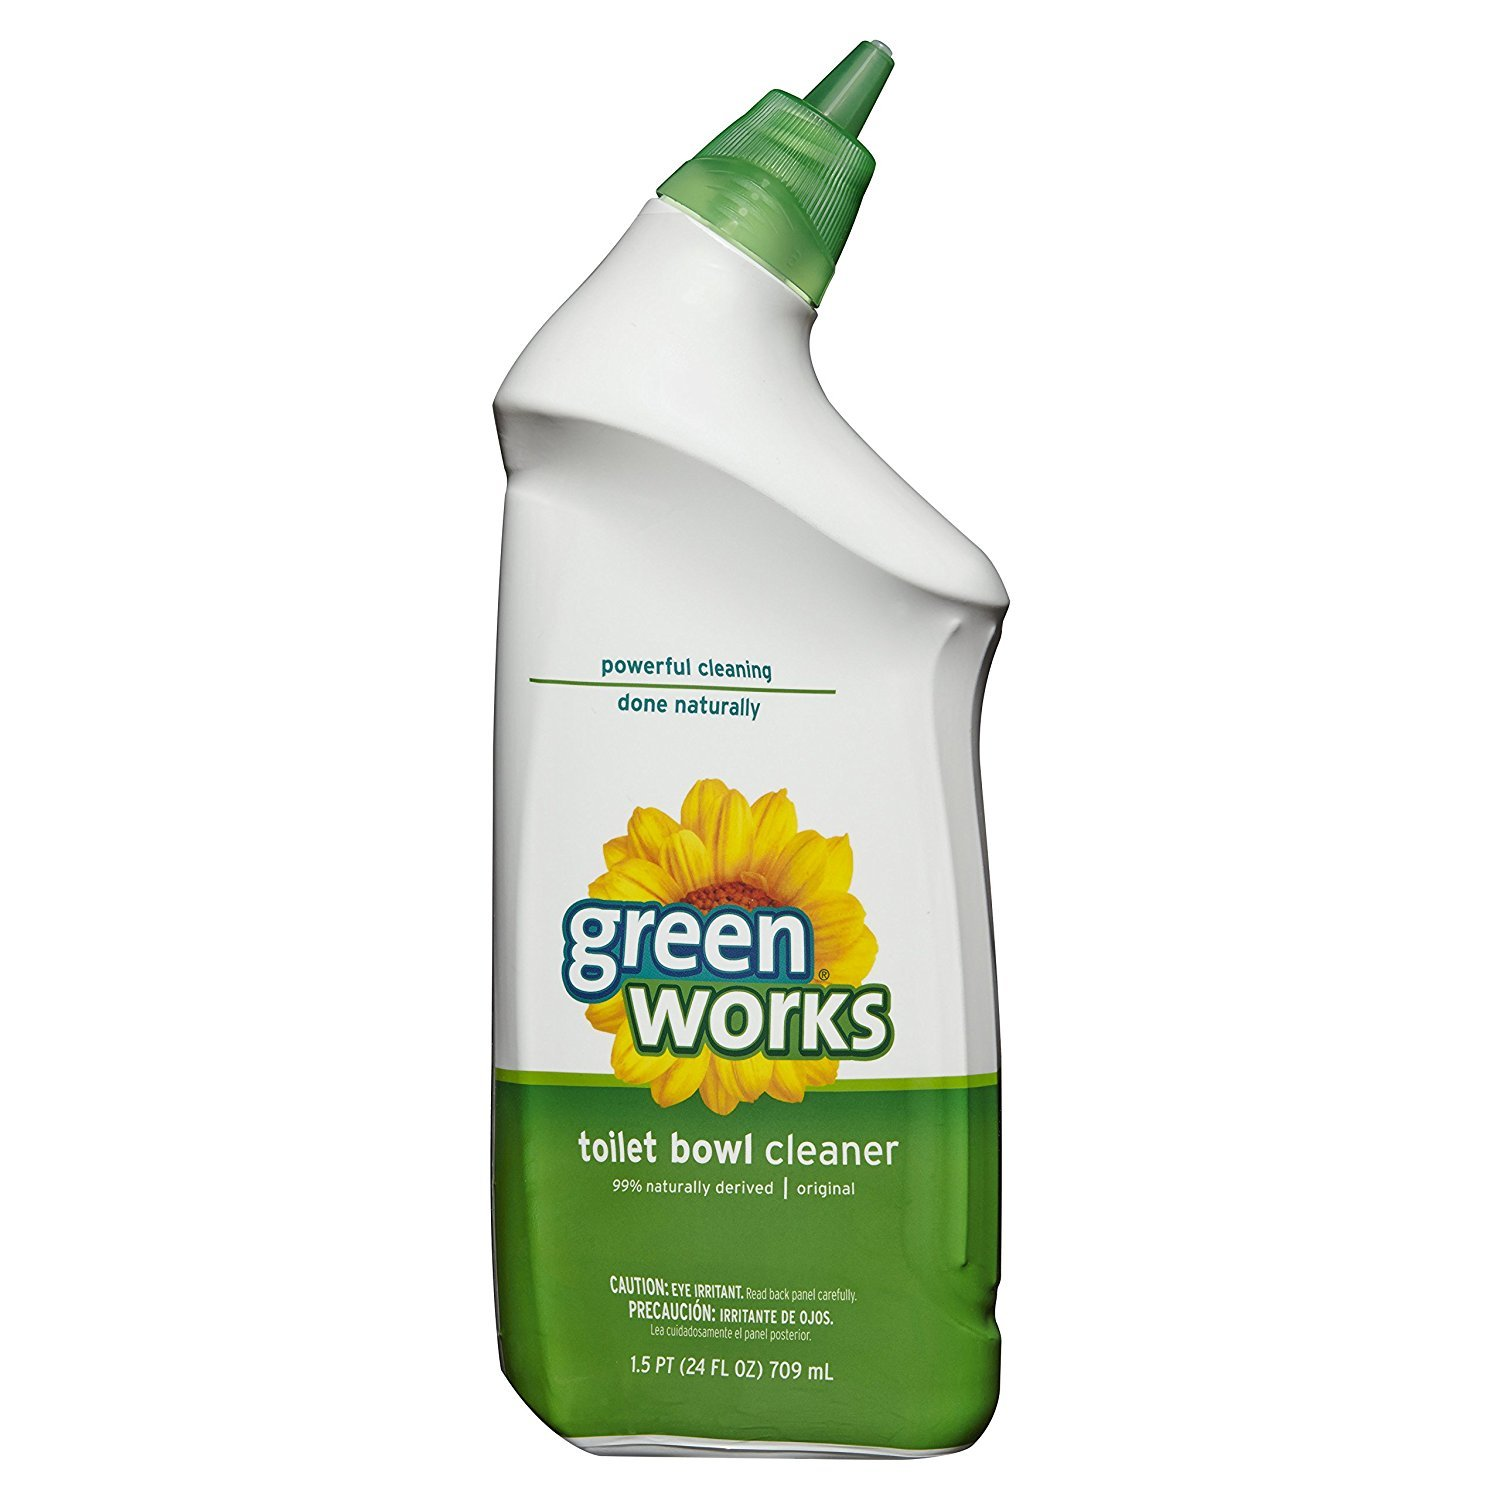 Green Works Toilet Bowl Cleaner, Toilet Gel Cleaner - 24 Ounces (Pack of 12) by Greenworks